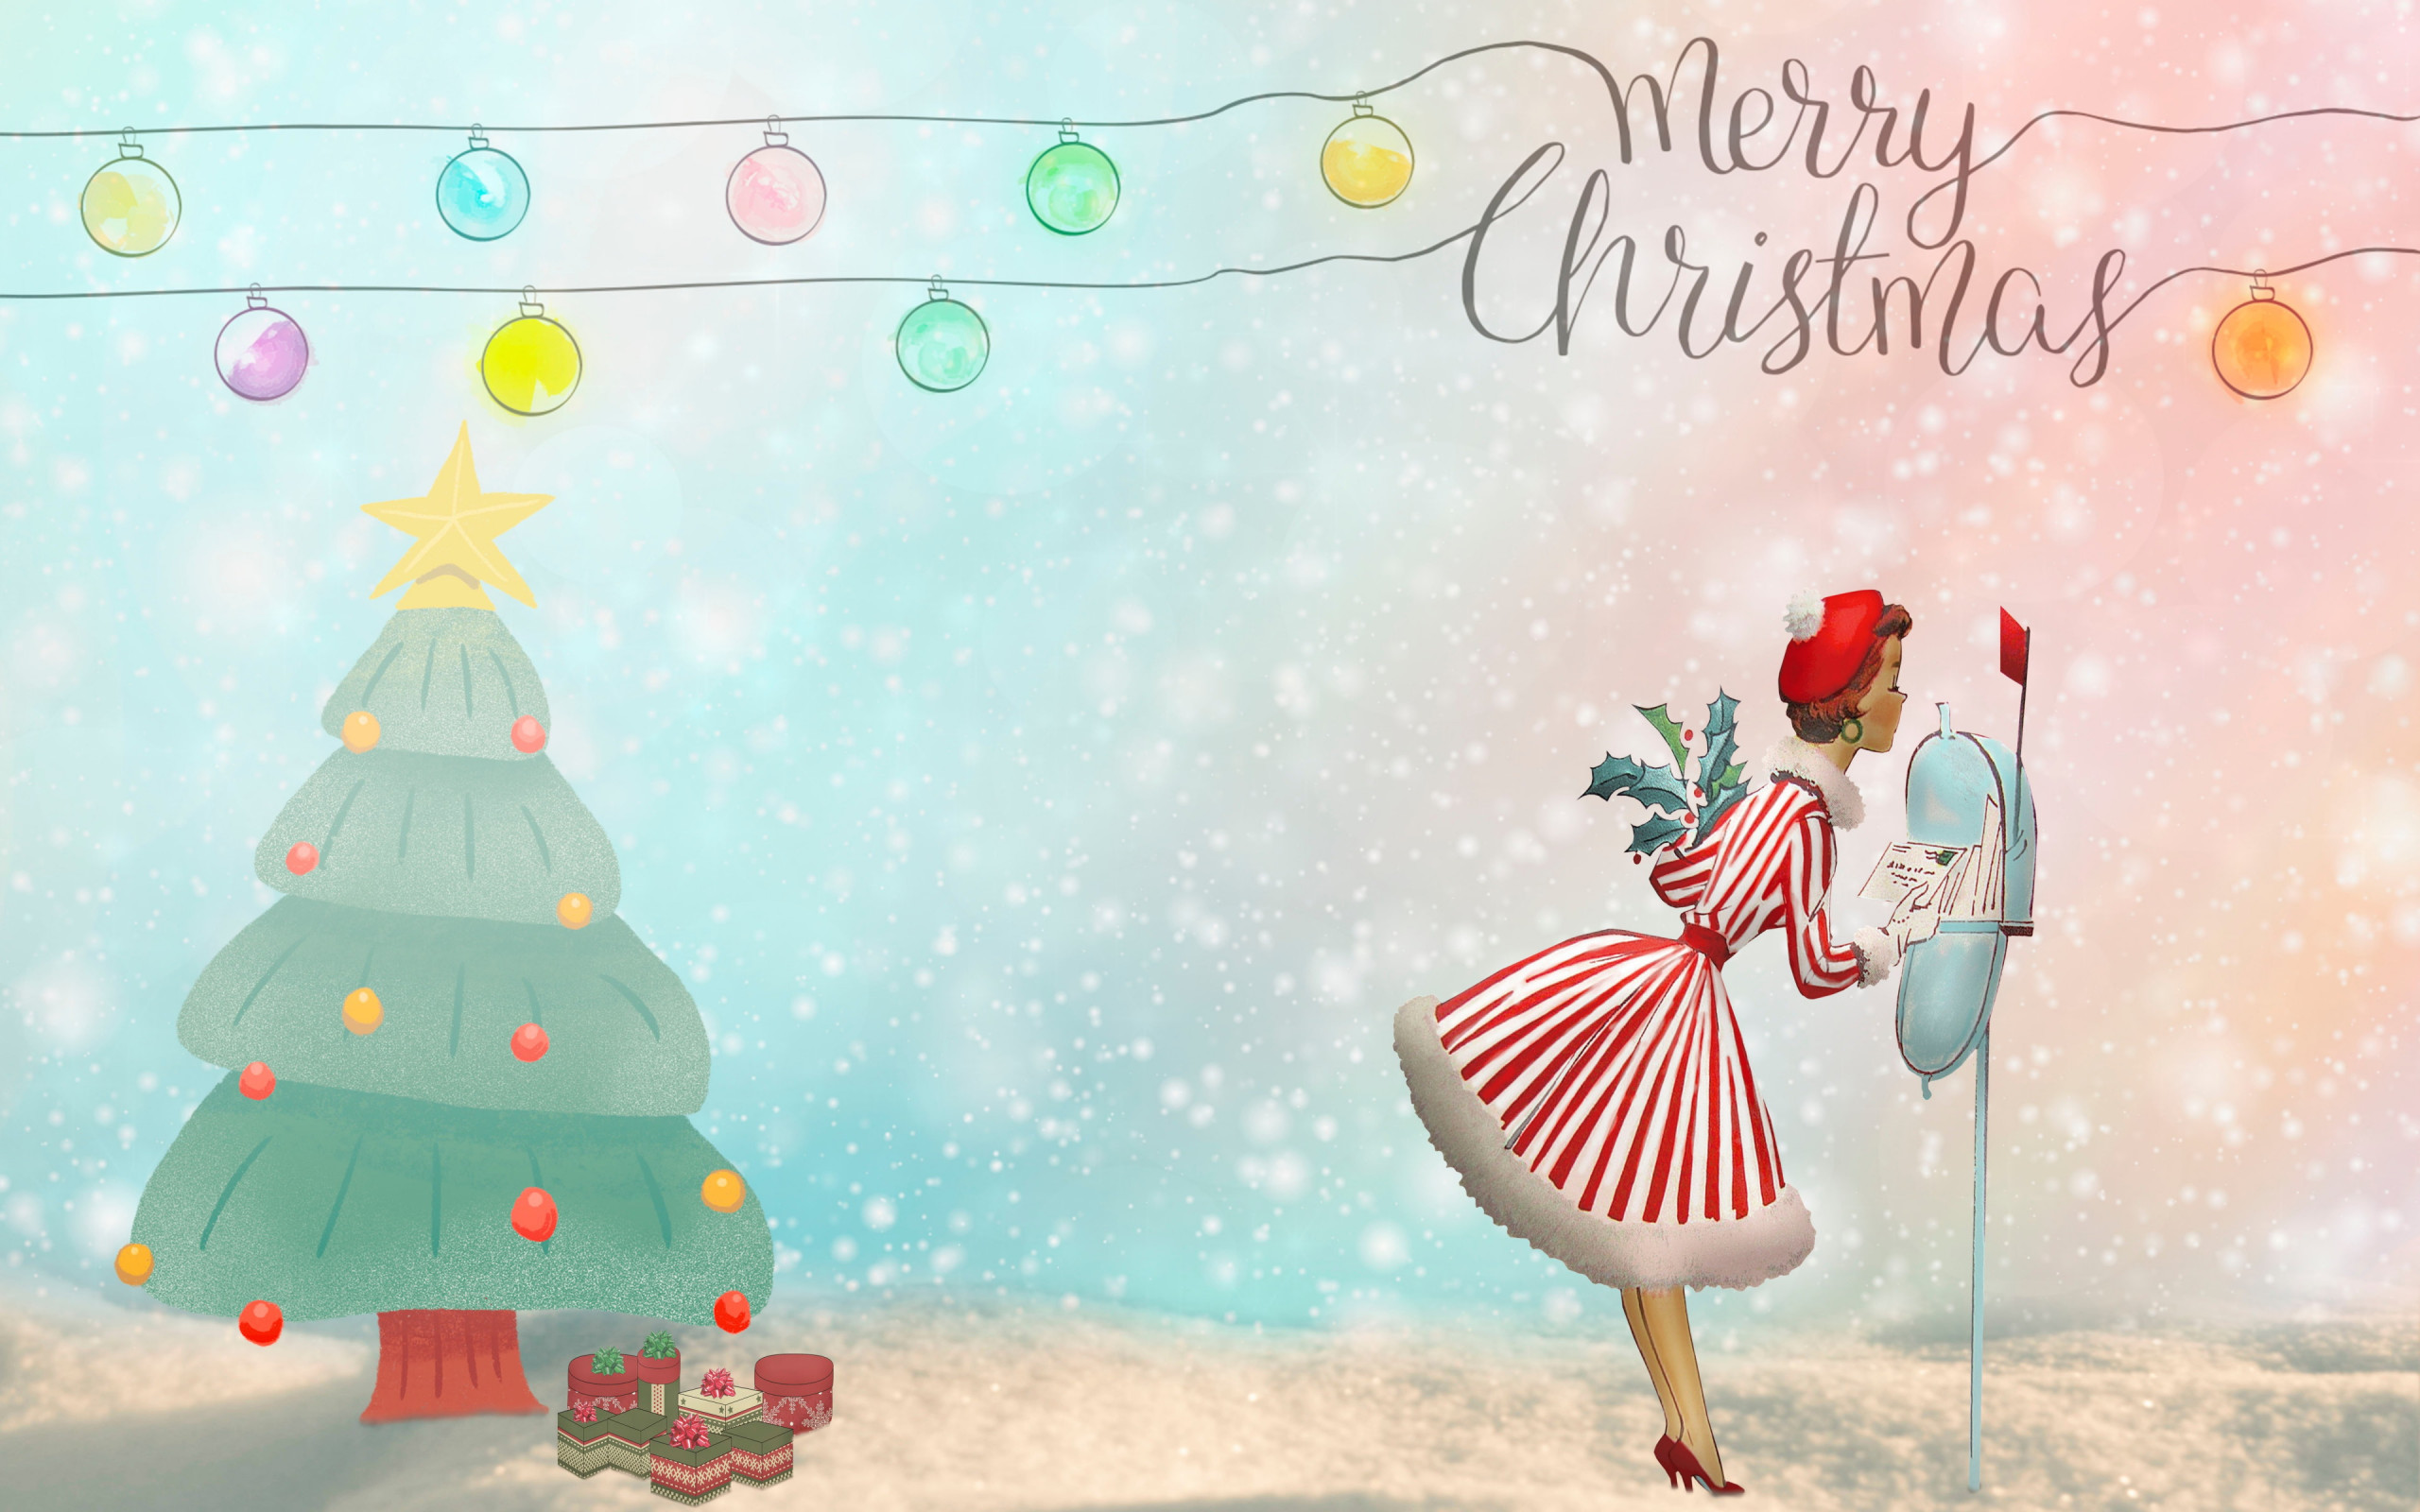 Merry Christmas 2020 Illustration wallpaper 2560x1600